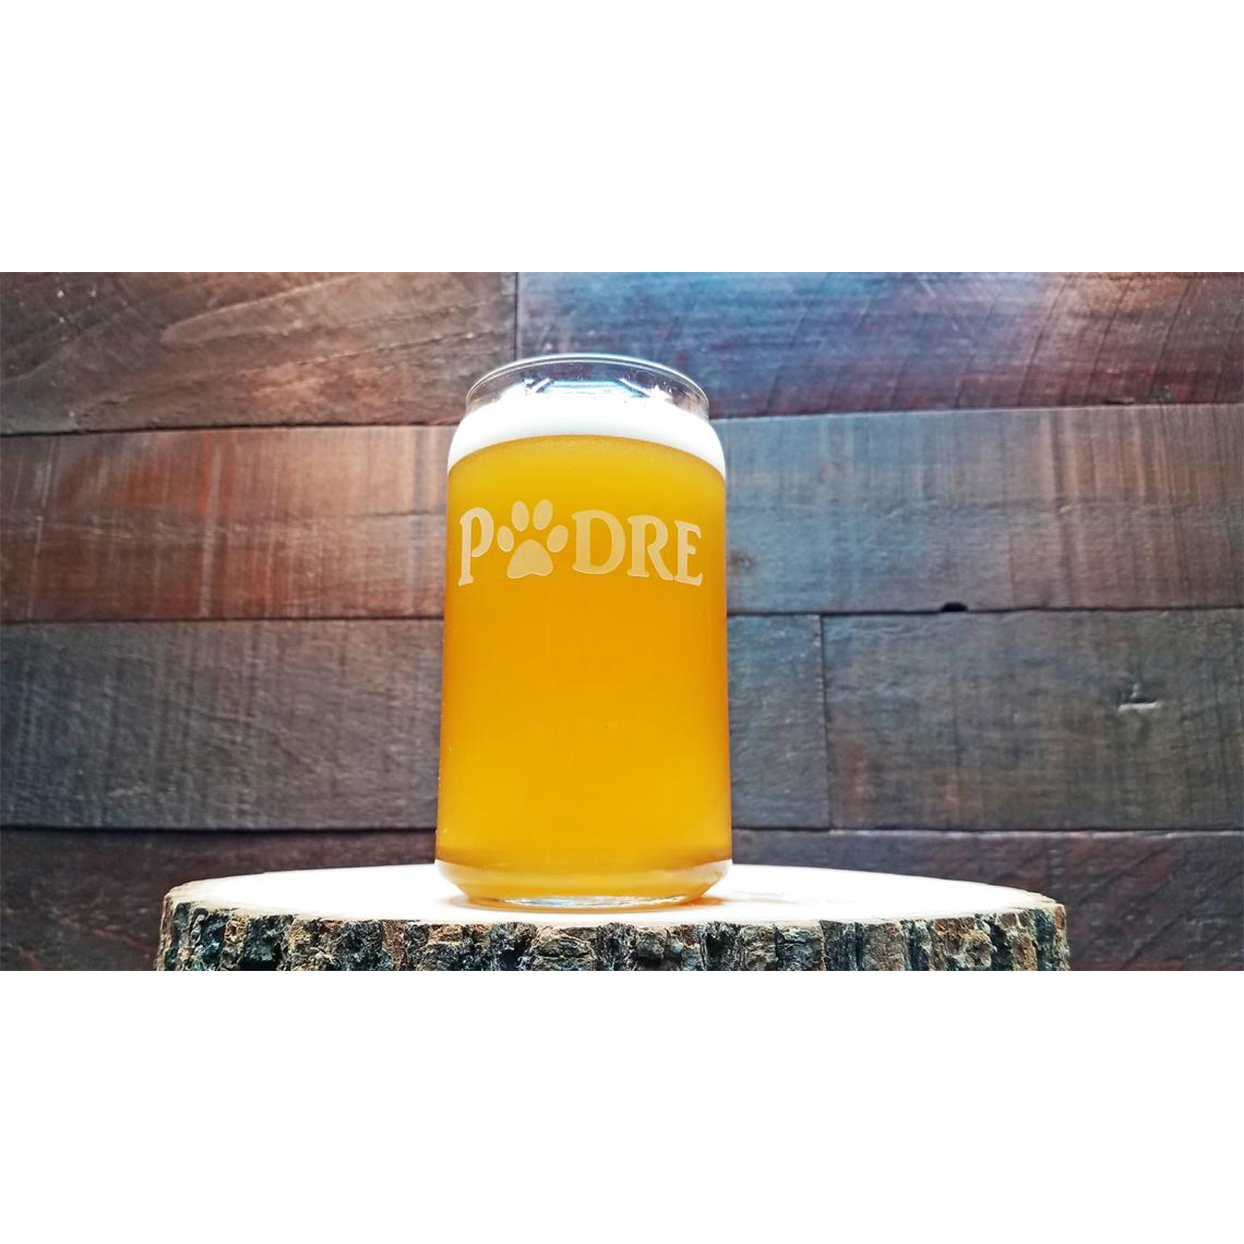 Padre beer can glass